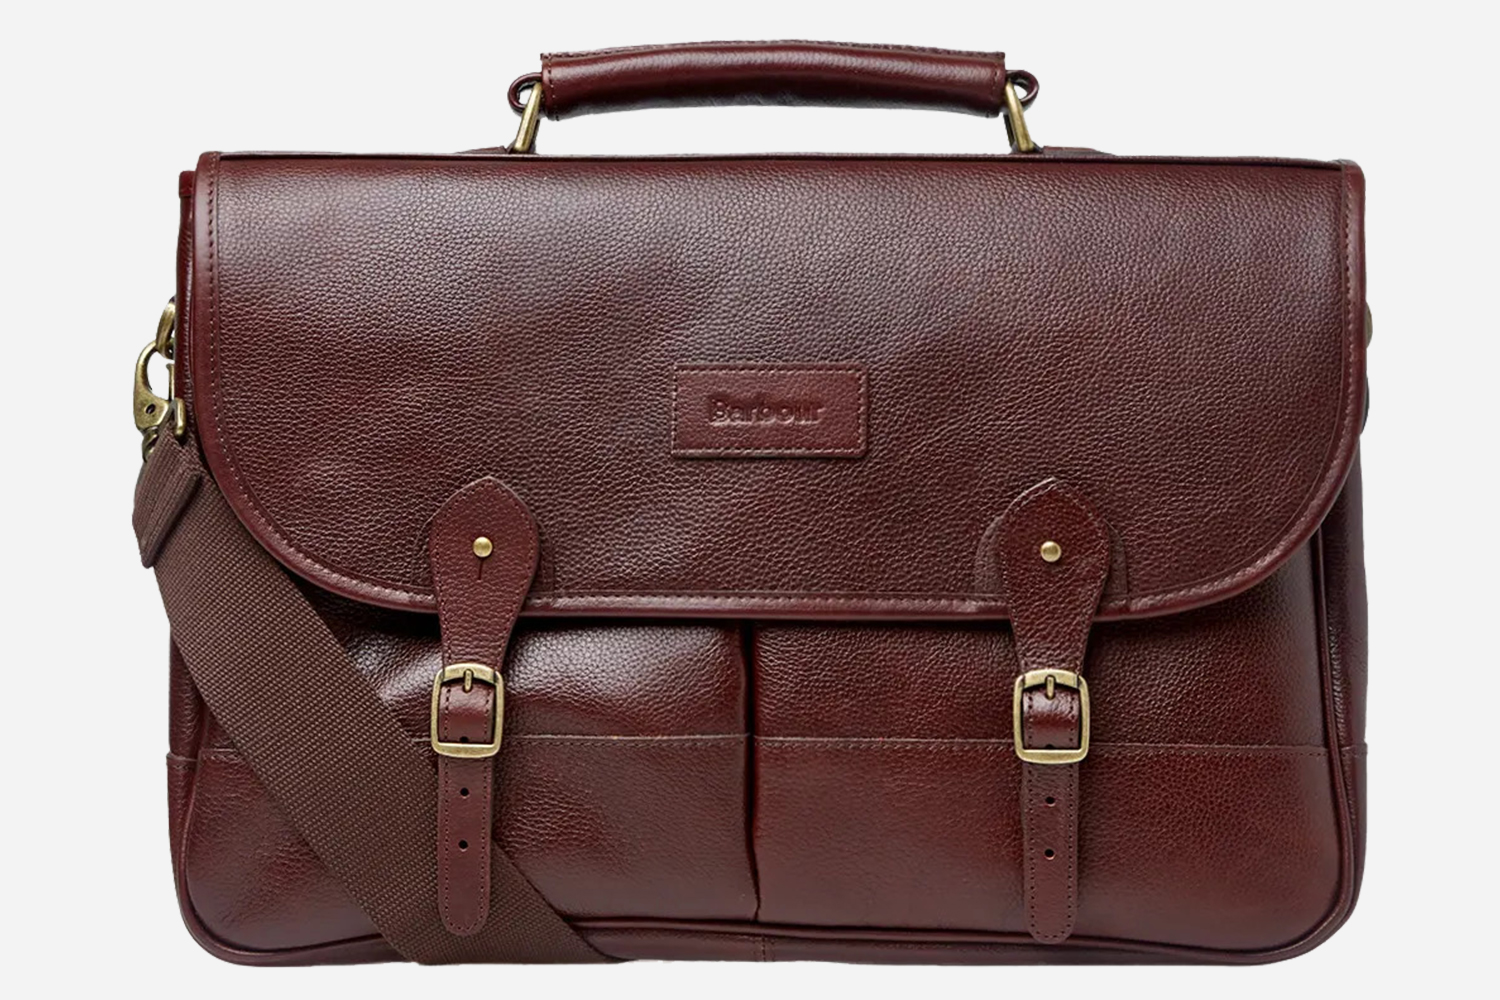 Barbour Briefcases Sale at End Clothing